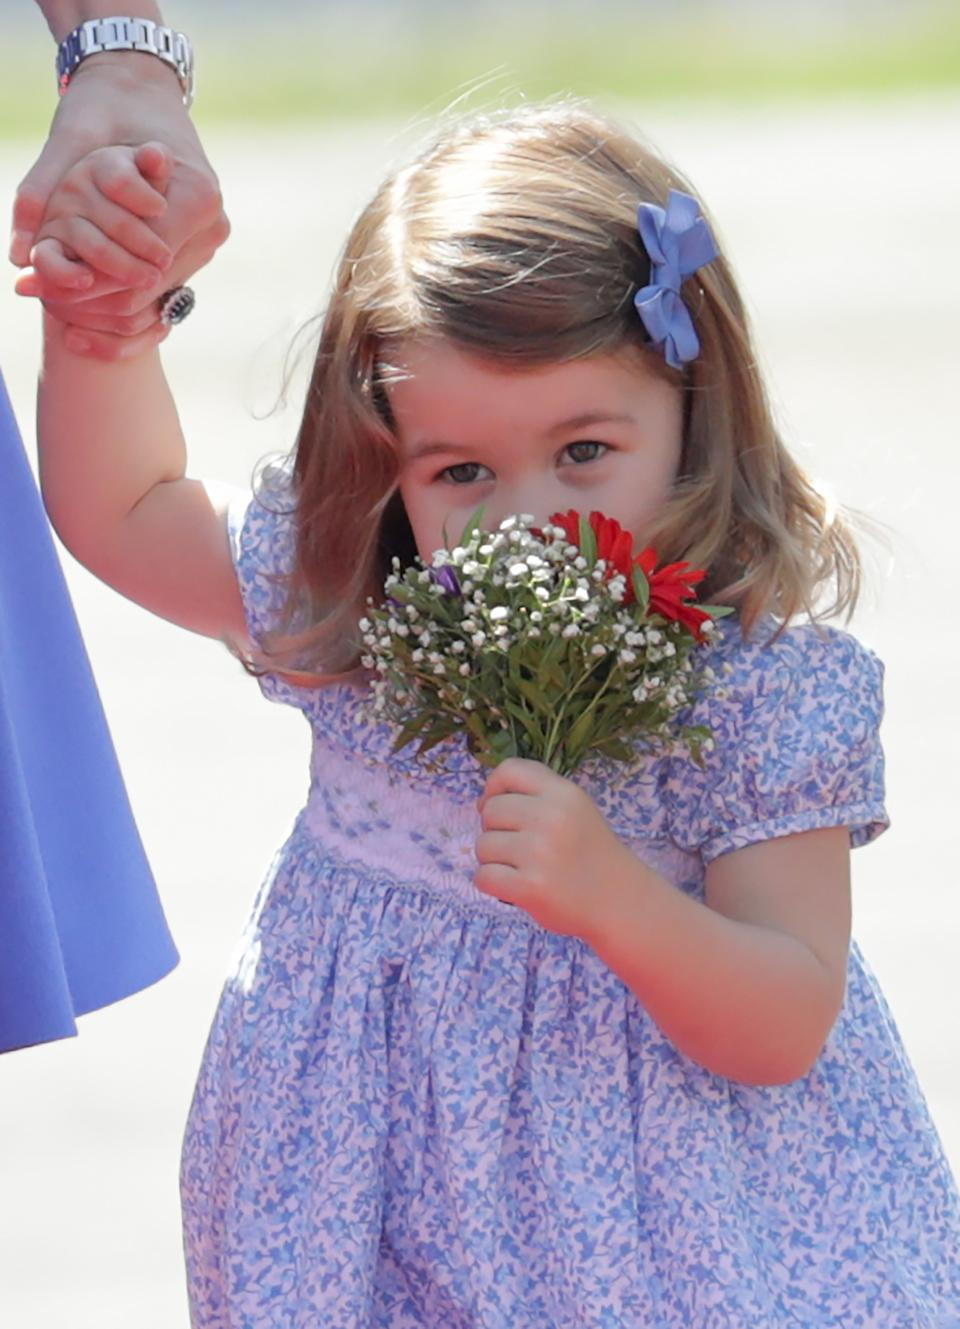 Charlotte, the daughter of Britain's Prince William and his wife Catherine, Duchess of Cambridge, smells a bunch of flowers after arriving at Tegel Airport in Berlin, Germany, 19 July 2017. Photo: Kay Nietfeld/dpa (Photo by Kay Nietfeld/picture alliance via Getty Images)